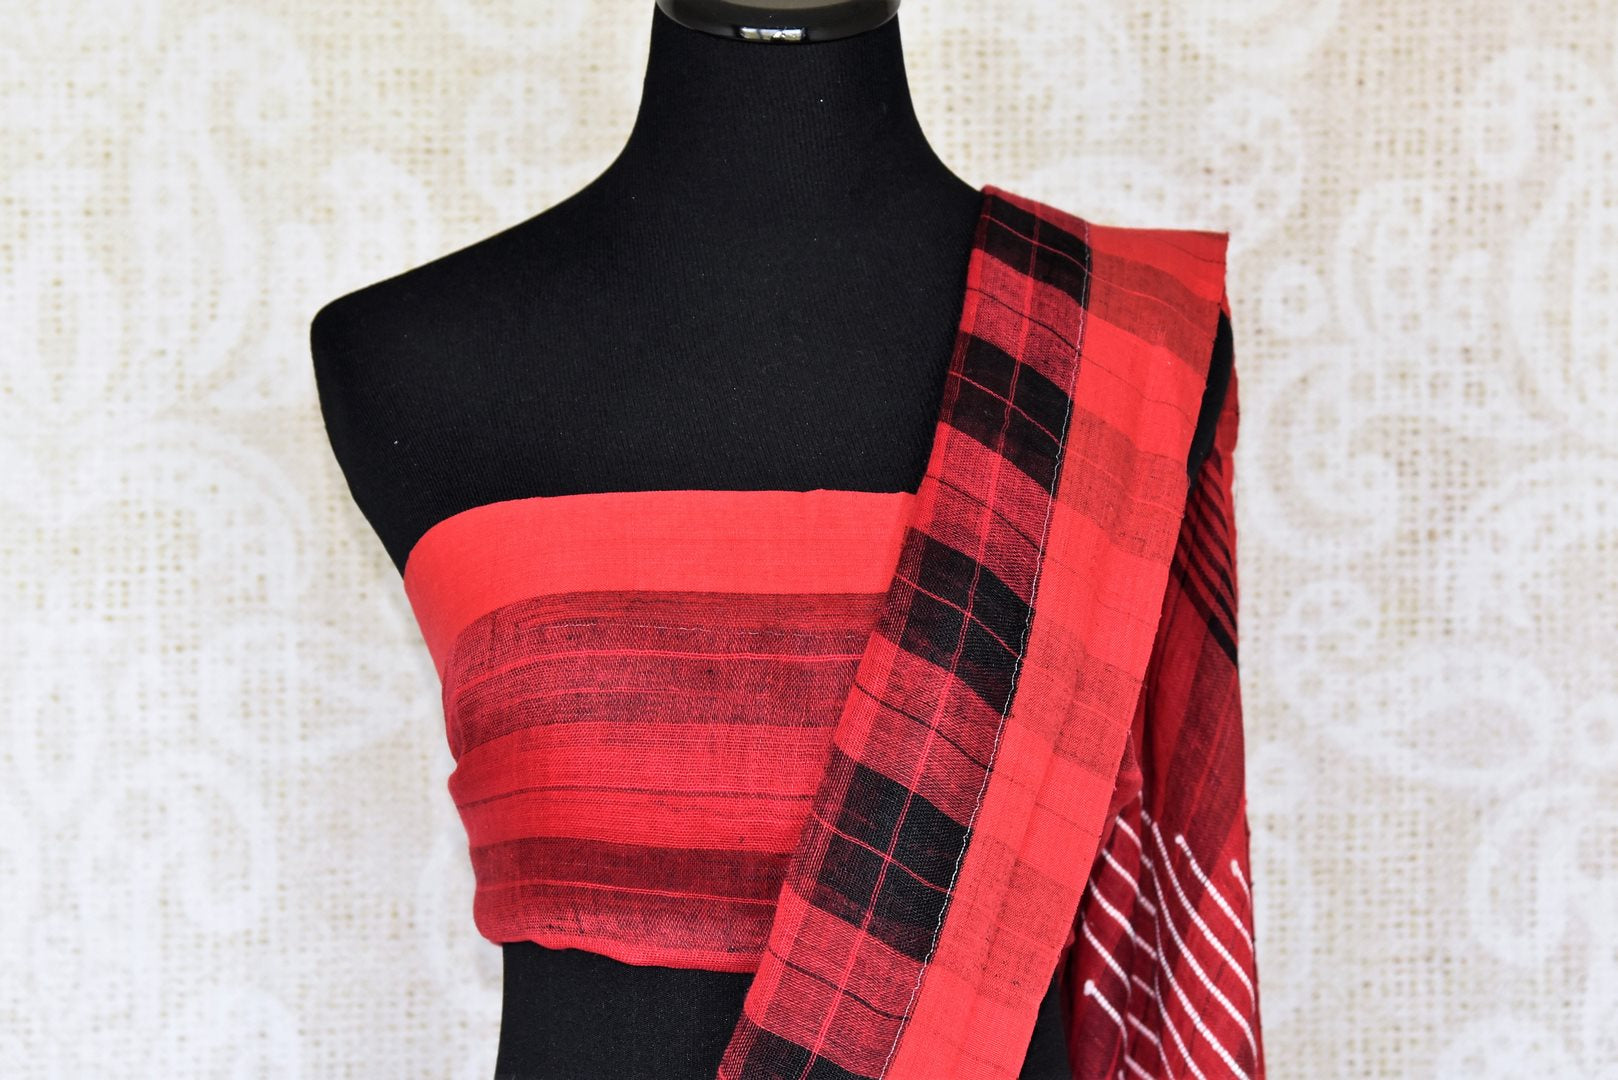 Strike a pose in this picture perfect red and black checkered linen saree with a deep red colored pallu. Style this ensemble with a red blouse. Complete the look with tribal jewelry and a bright smile. Shop handloom sarees, linen saris, silk sarees, Indian dresses online or visit Pure Elegance store, USA. -blouse pallu